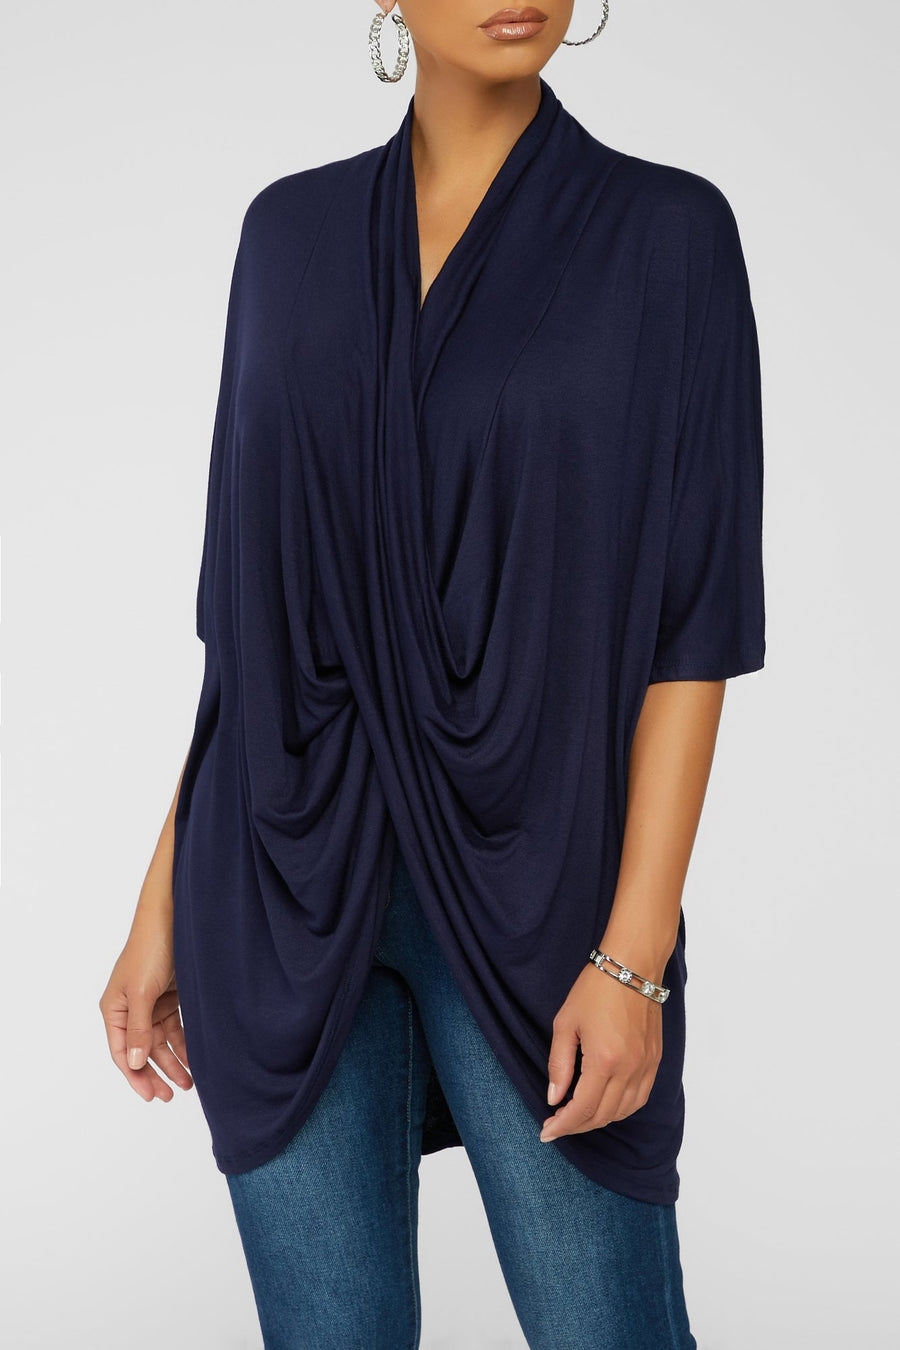 Twist And Turn Top - Navy